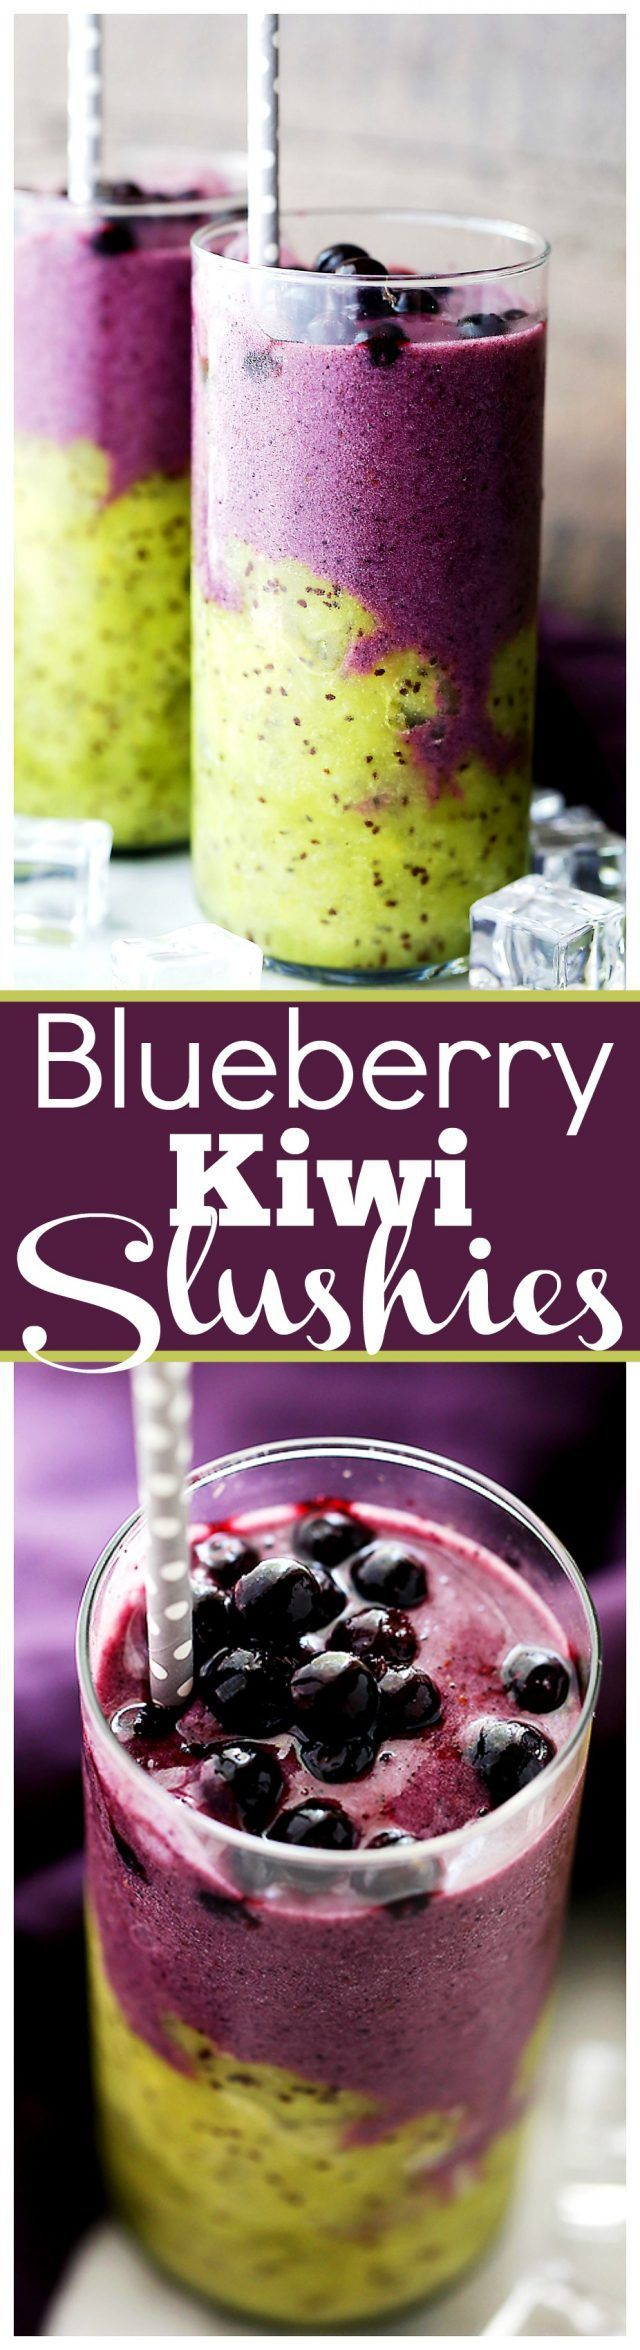 Blueberry Kiwi Slushies - Cooling and refreshing, these healthy Blueberry Kiwi Slushies are SO delicious and super easy to make!